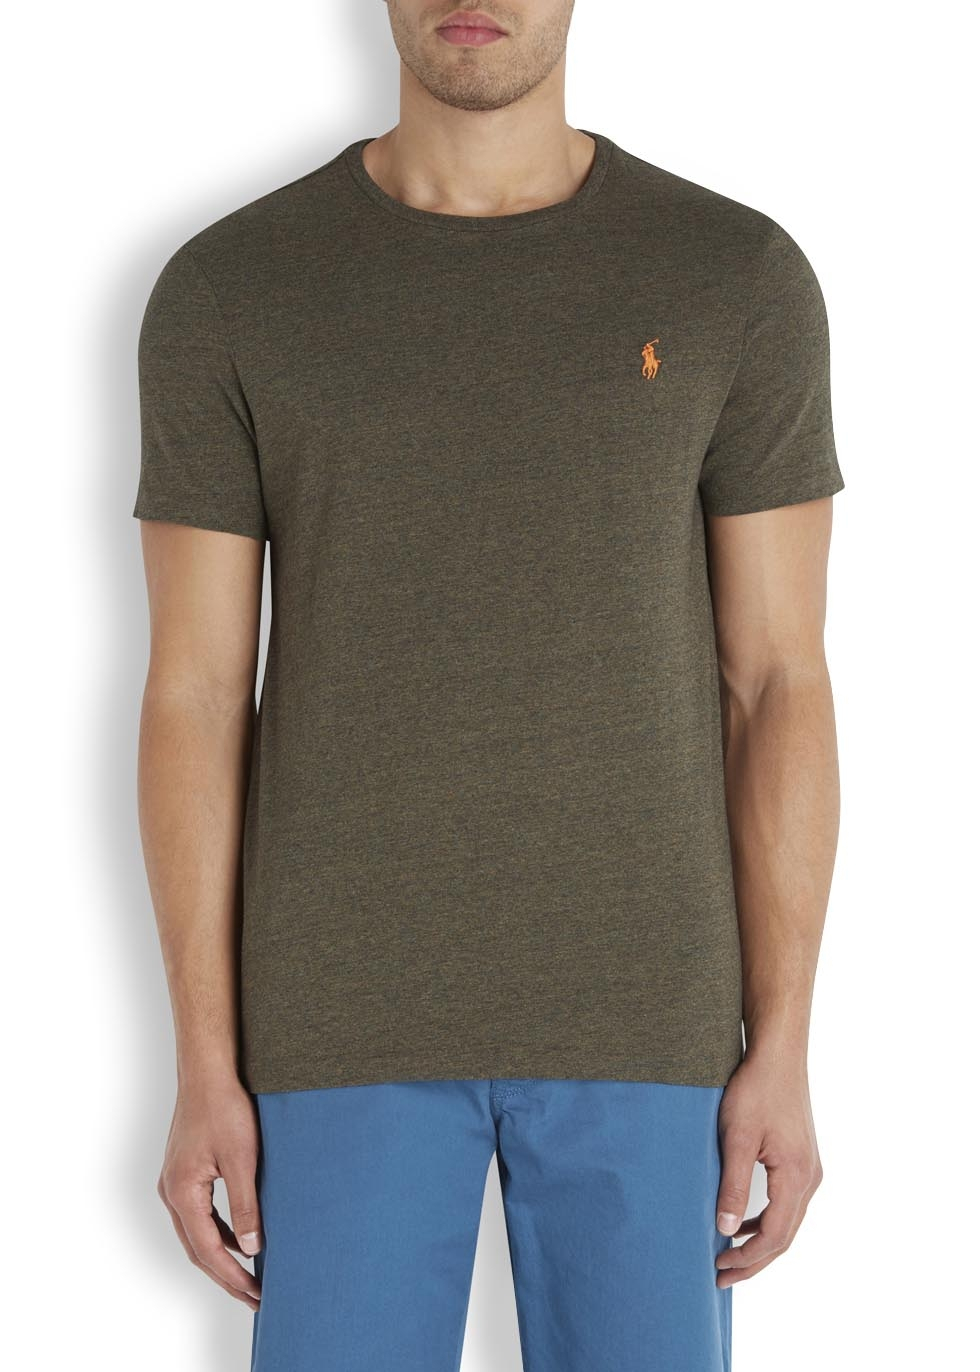 polo ralph lauren olive cotton t shirt in green for men lyst. Black Bedroom Furniture Sets. Home Design Ideas